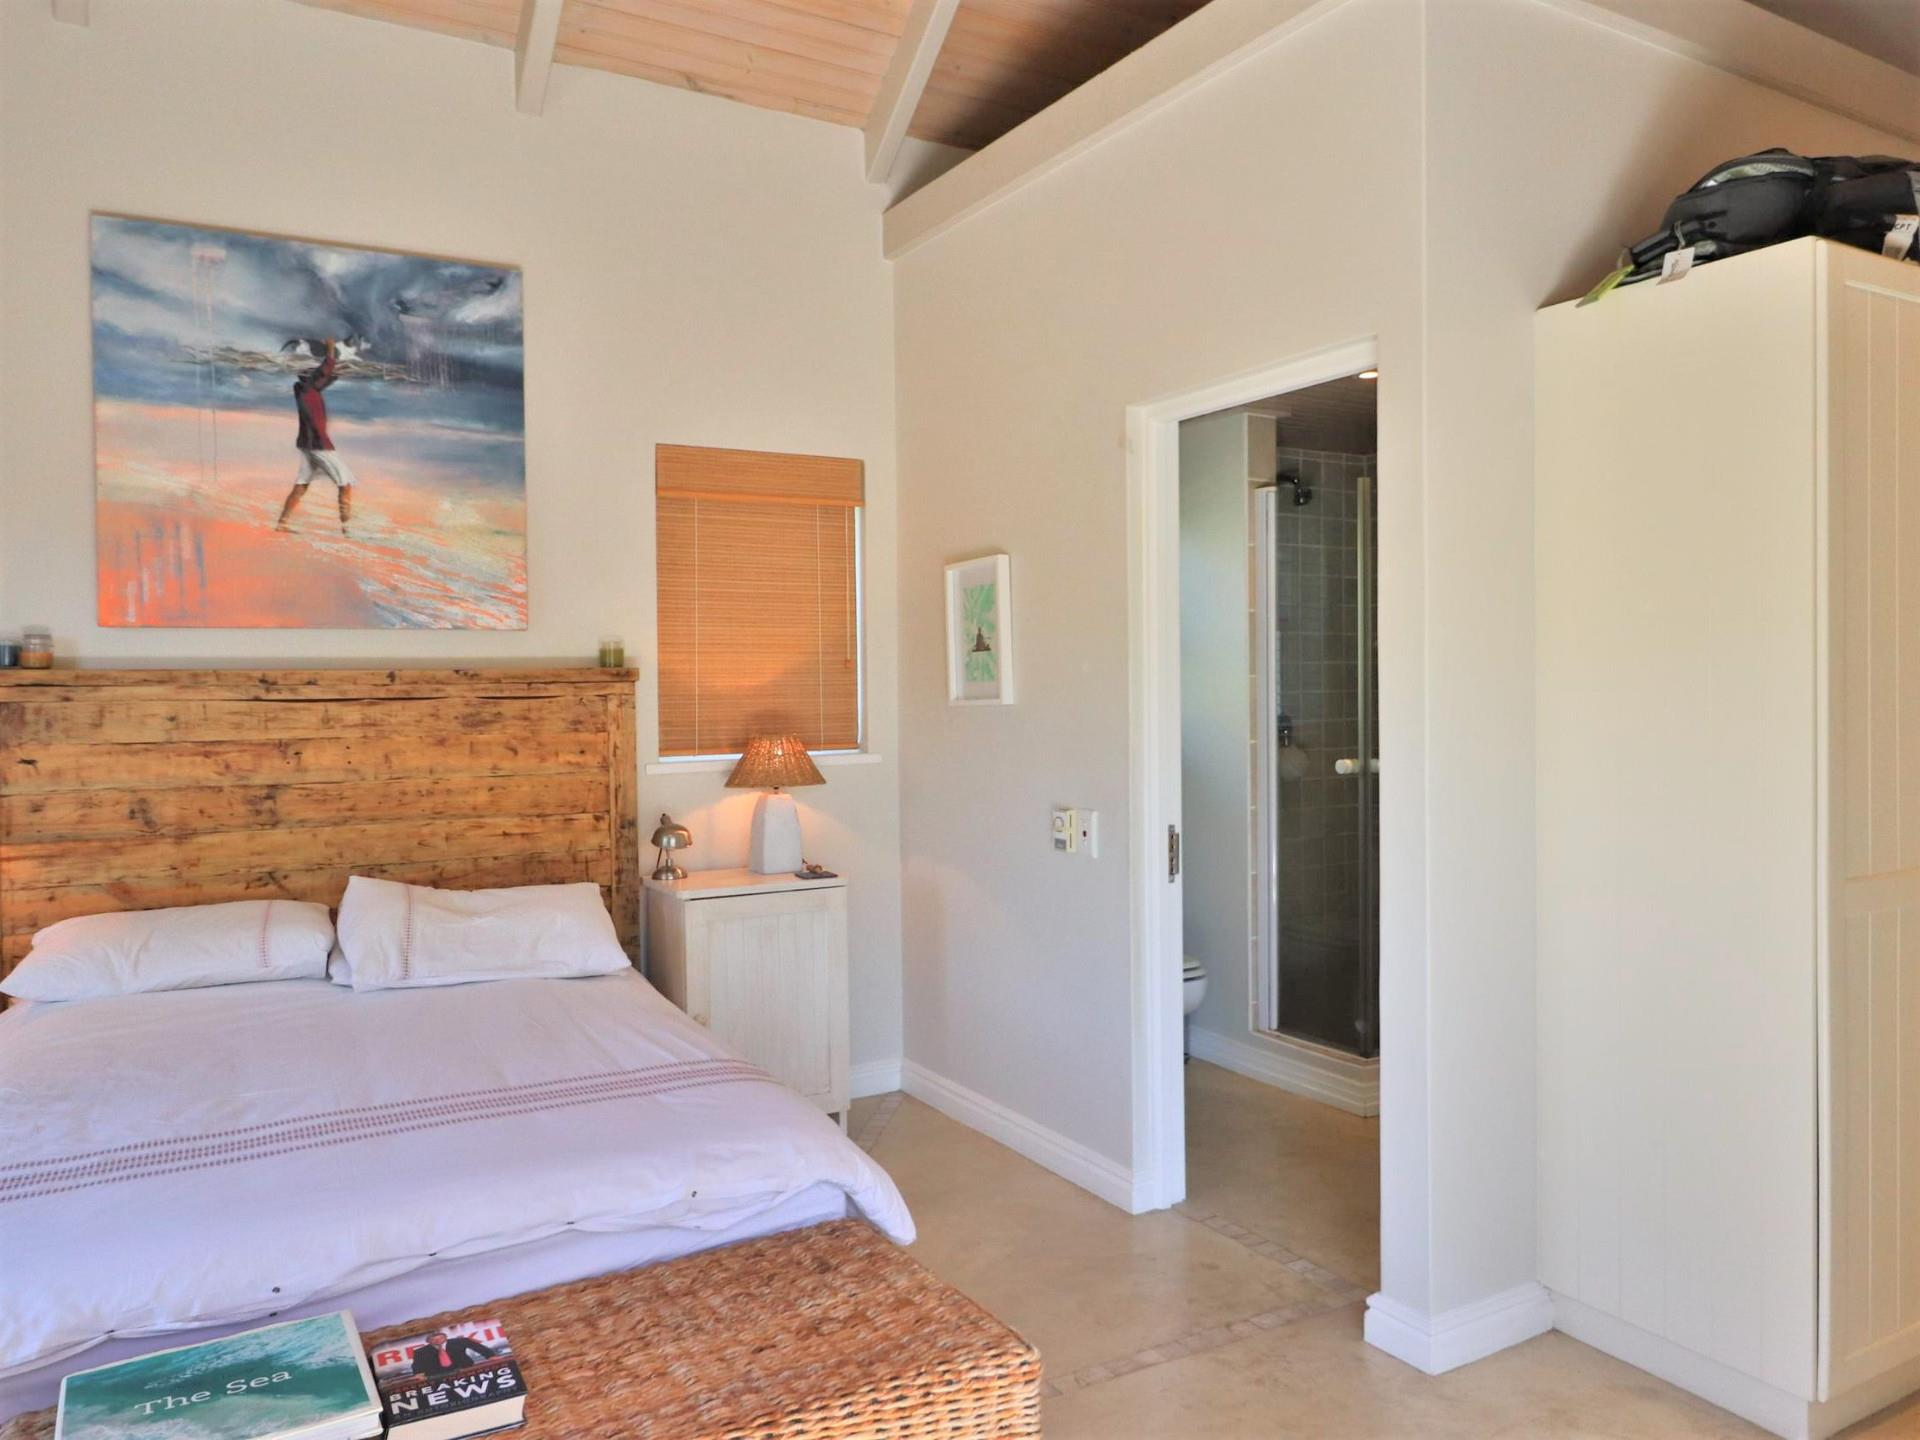 4 Bedroom House For Sale in Thesen Island